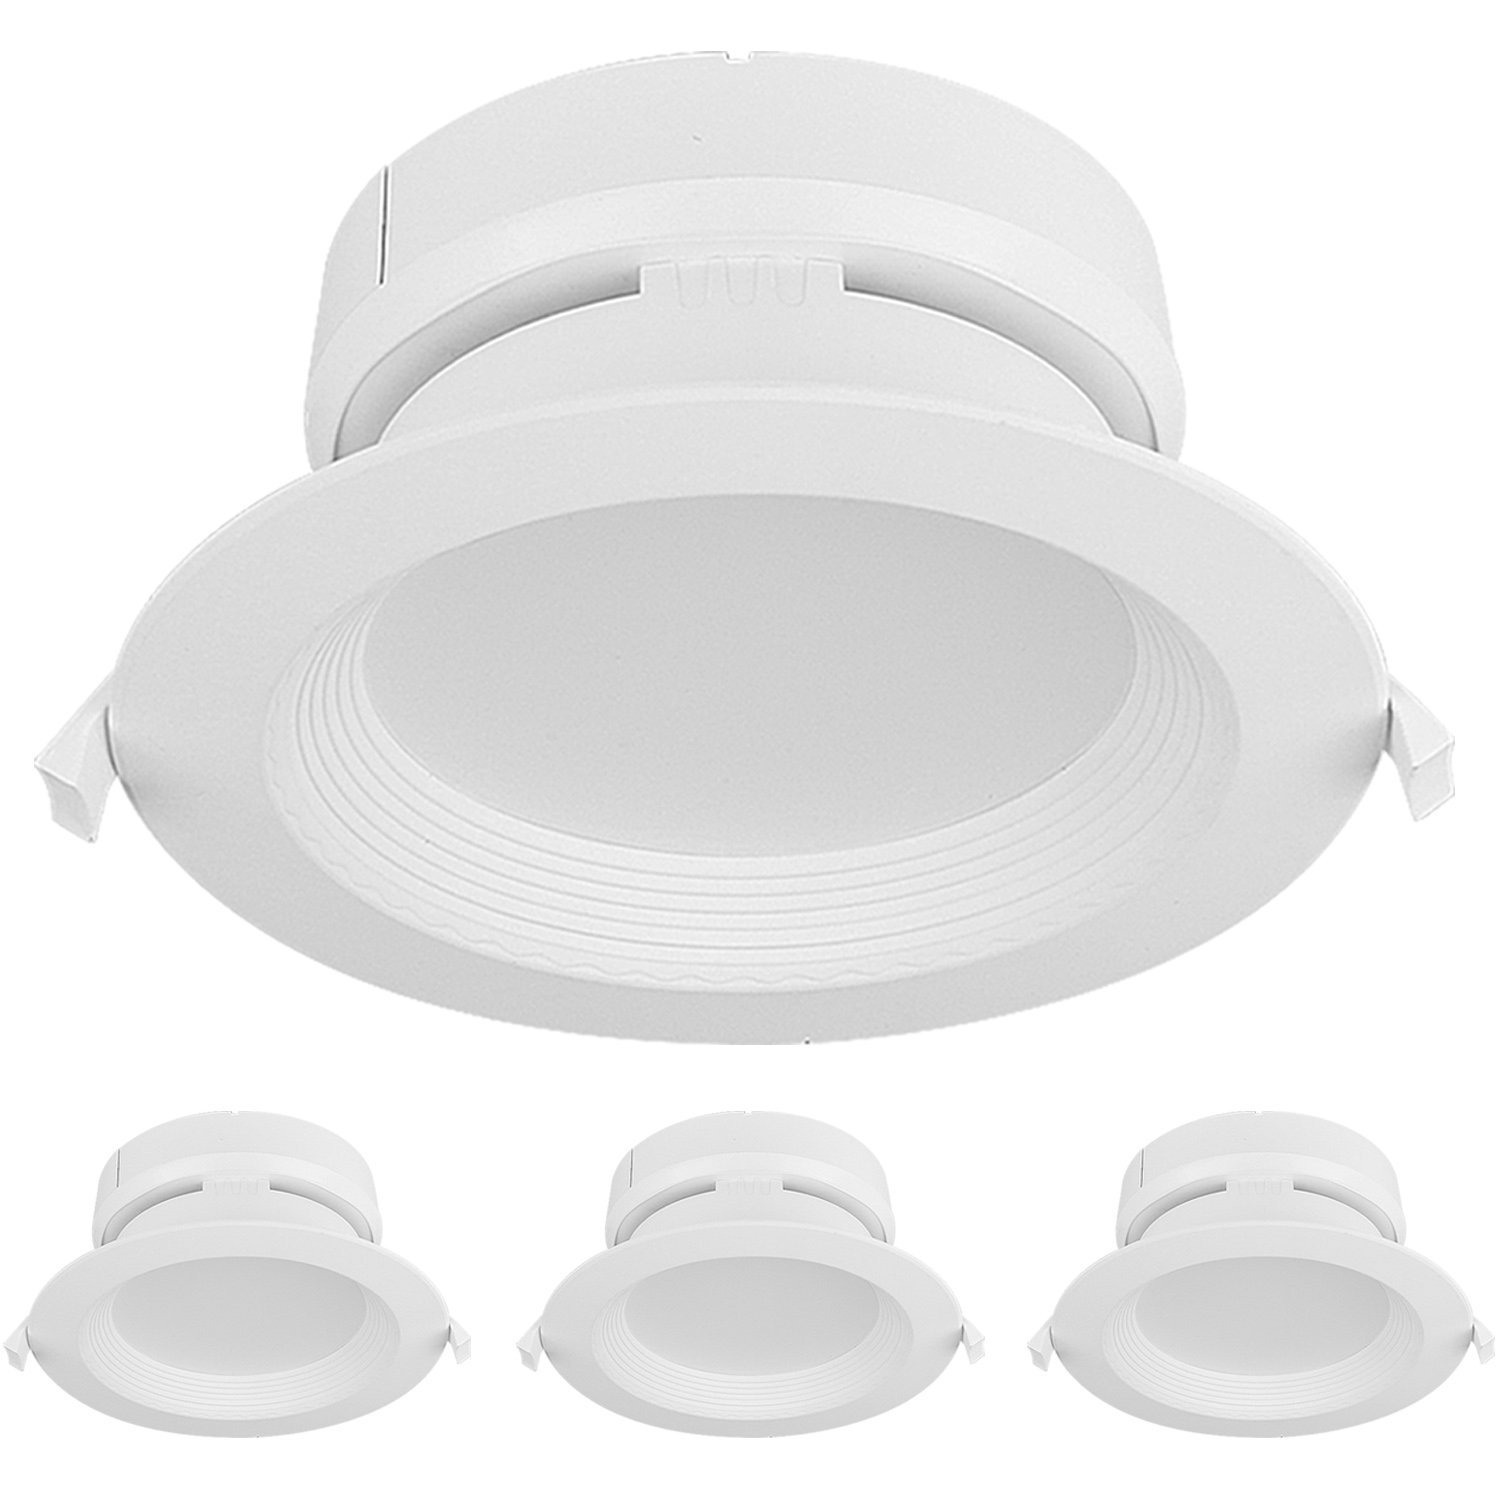 Hykolity 5/6 Inch LED Recessed Downlight Kit with Junction box, 15W 1500lm 5000K Daylight Dimmable Remodeling LED downlight kit, 120V-277V, Airtight& IC Rated Wet Location, ETL&Energy Star- 4 Pack